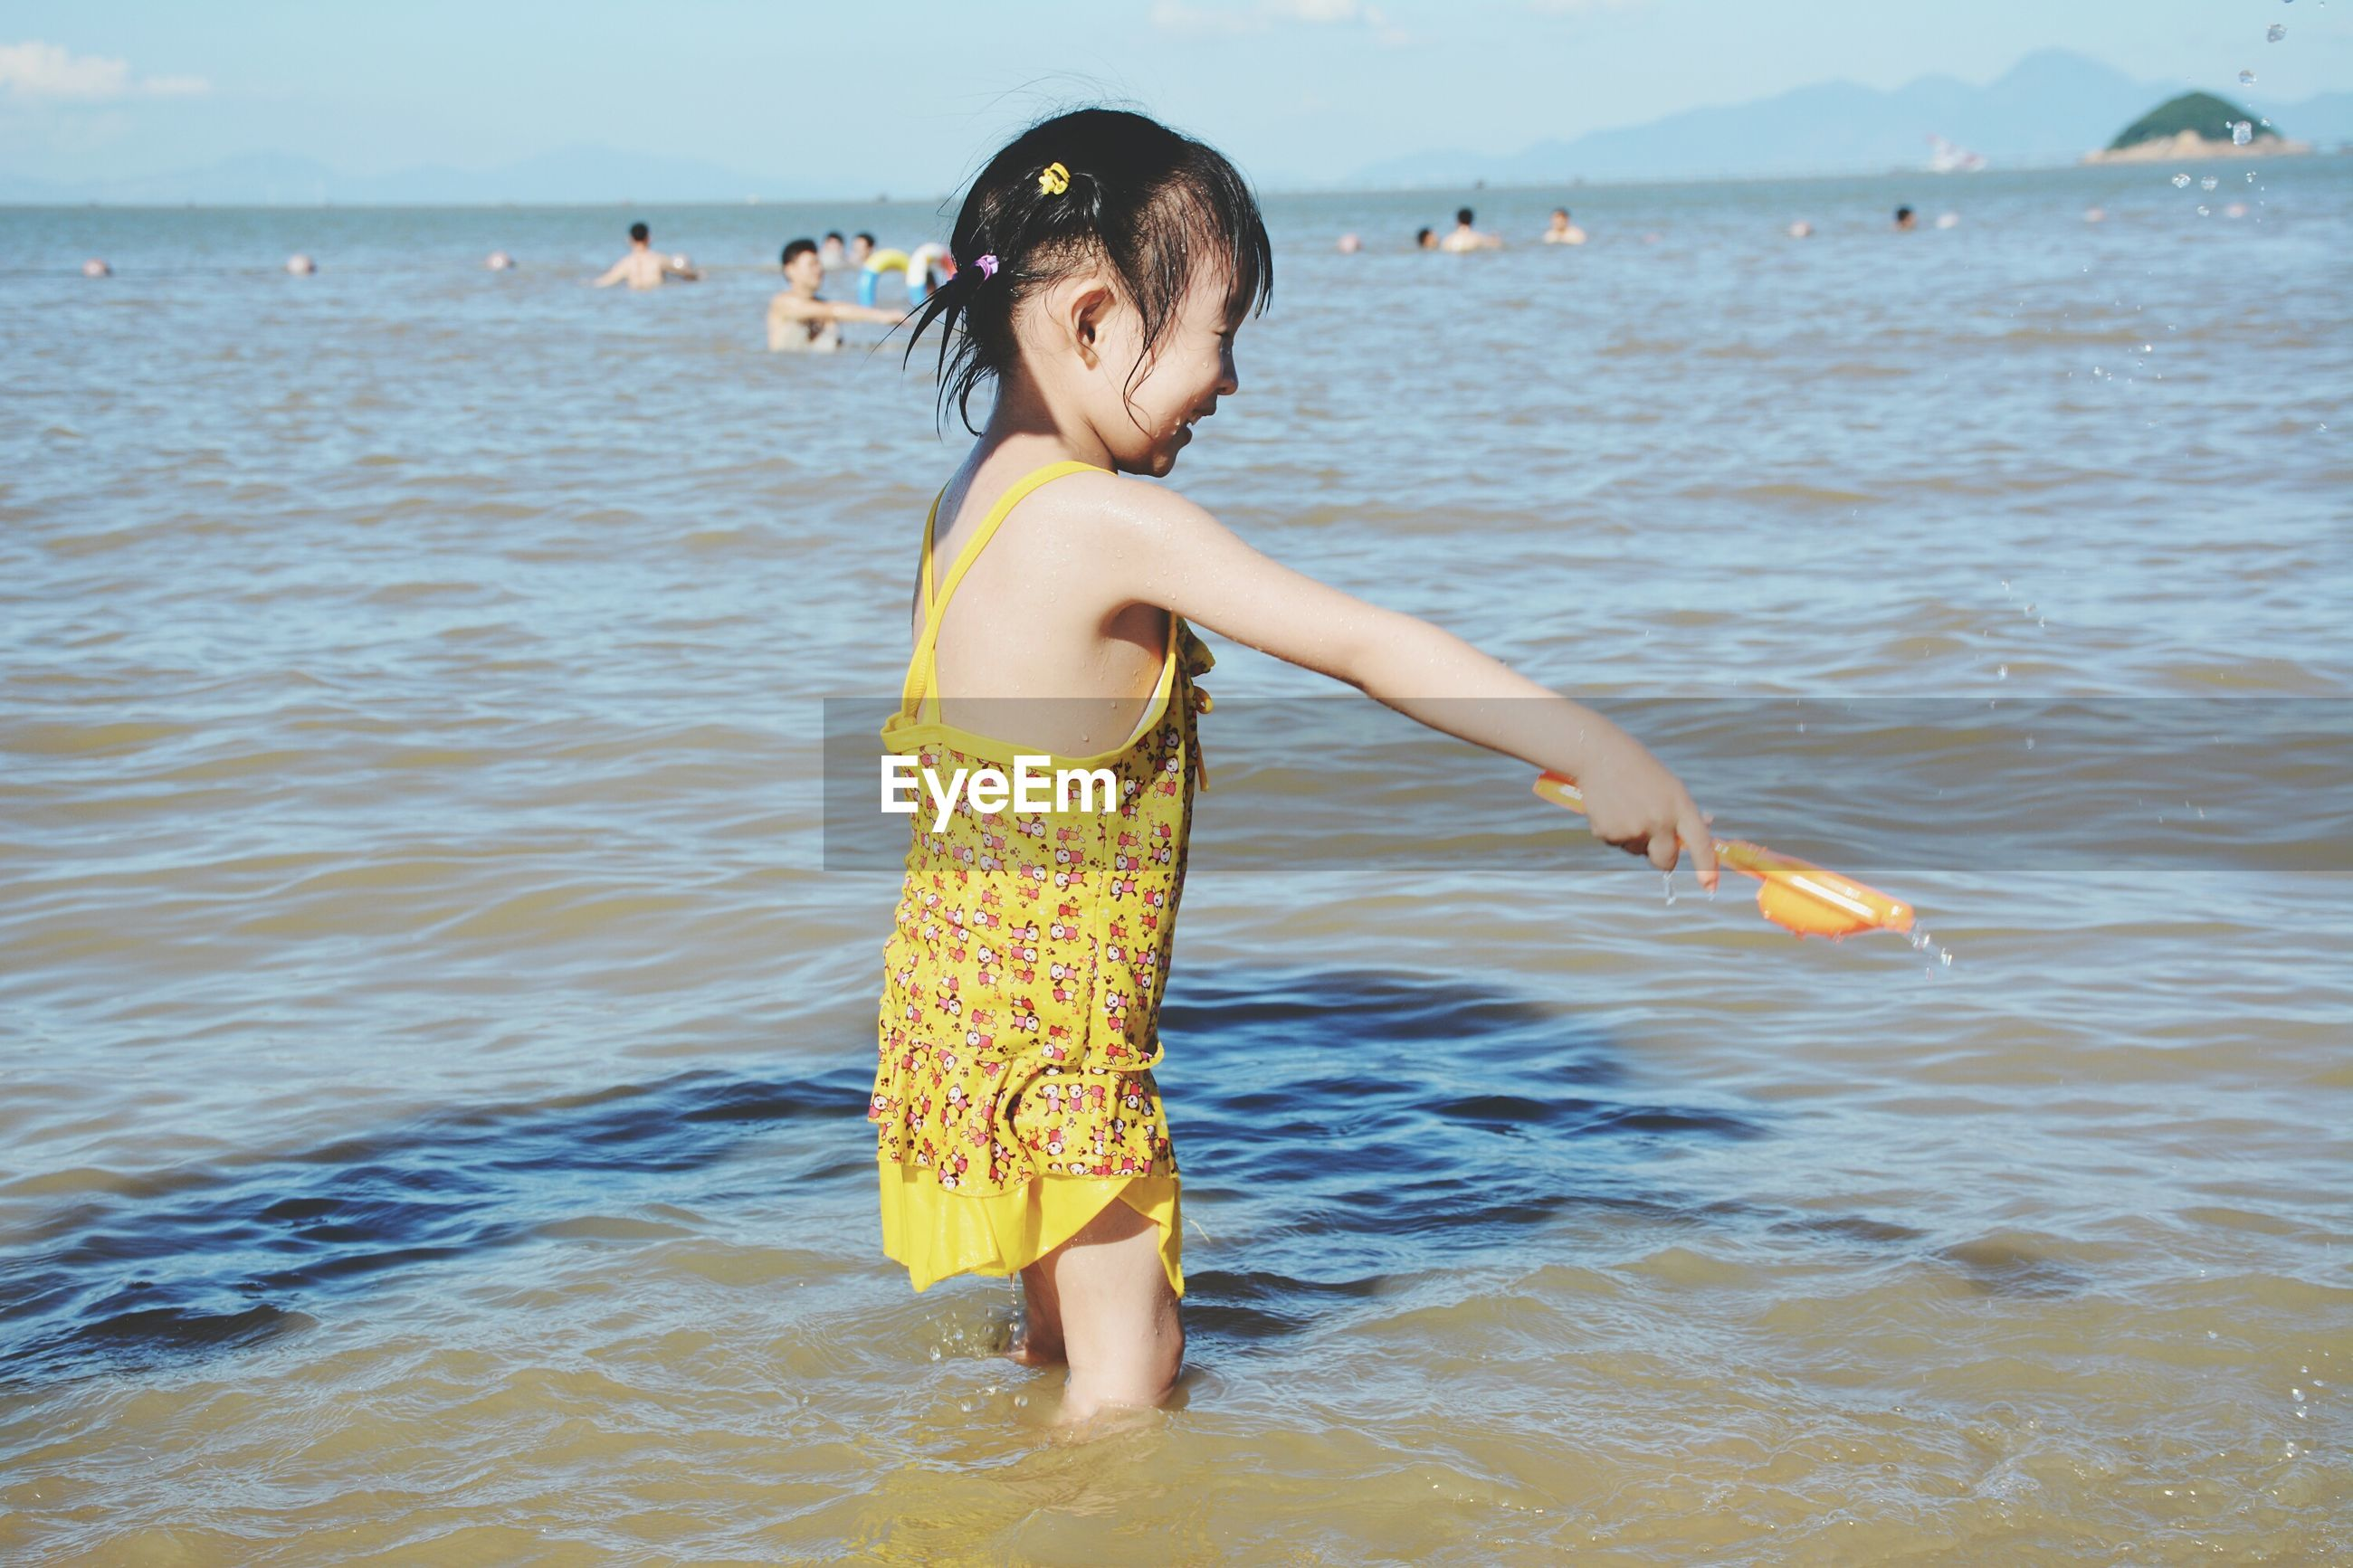 water, sea, beach, lifestyles, leisure activity, vacations, person, shore, wave, enjoyment, standing, full length, young women, horizon over water, girls, front view, childhood, bikini